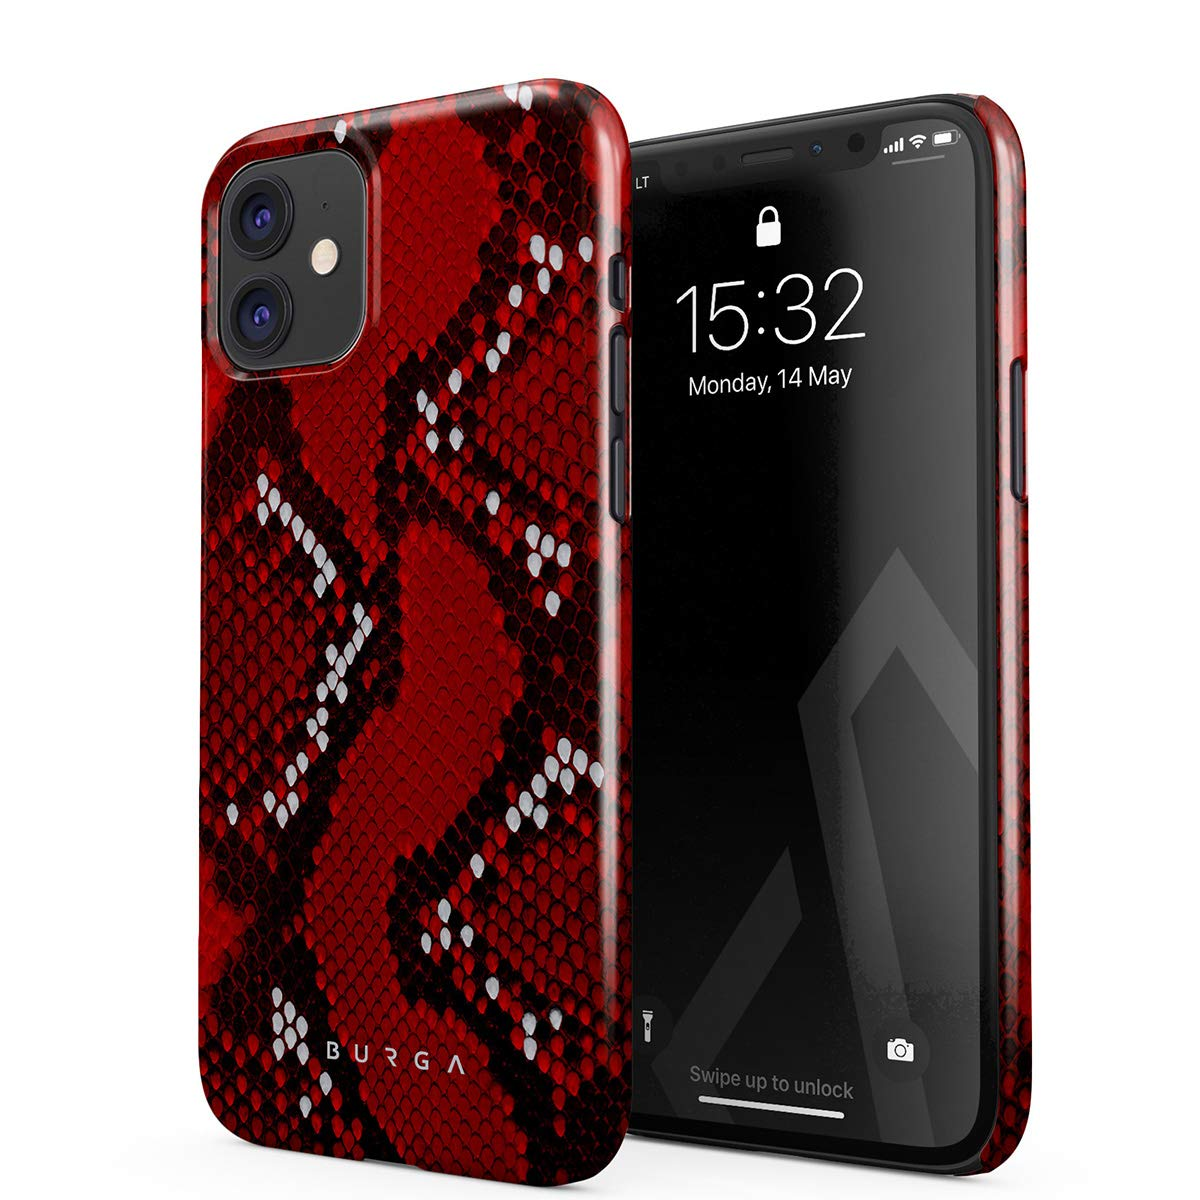 BURGA Phone Case Compatible with iPhone 11 - Crimson Danger Savage Red Snake Skin Cute Case for Women Thin Design Durable Hard Plastic Protective Case